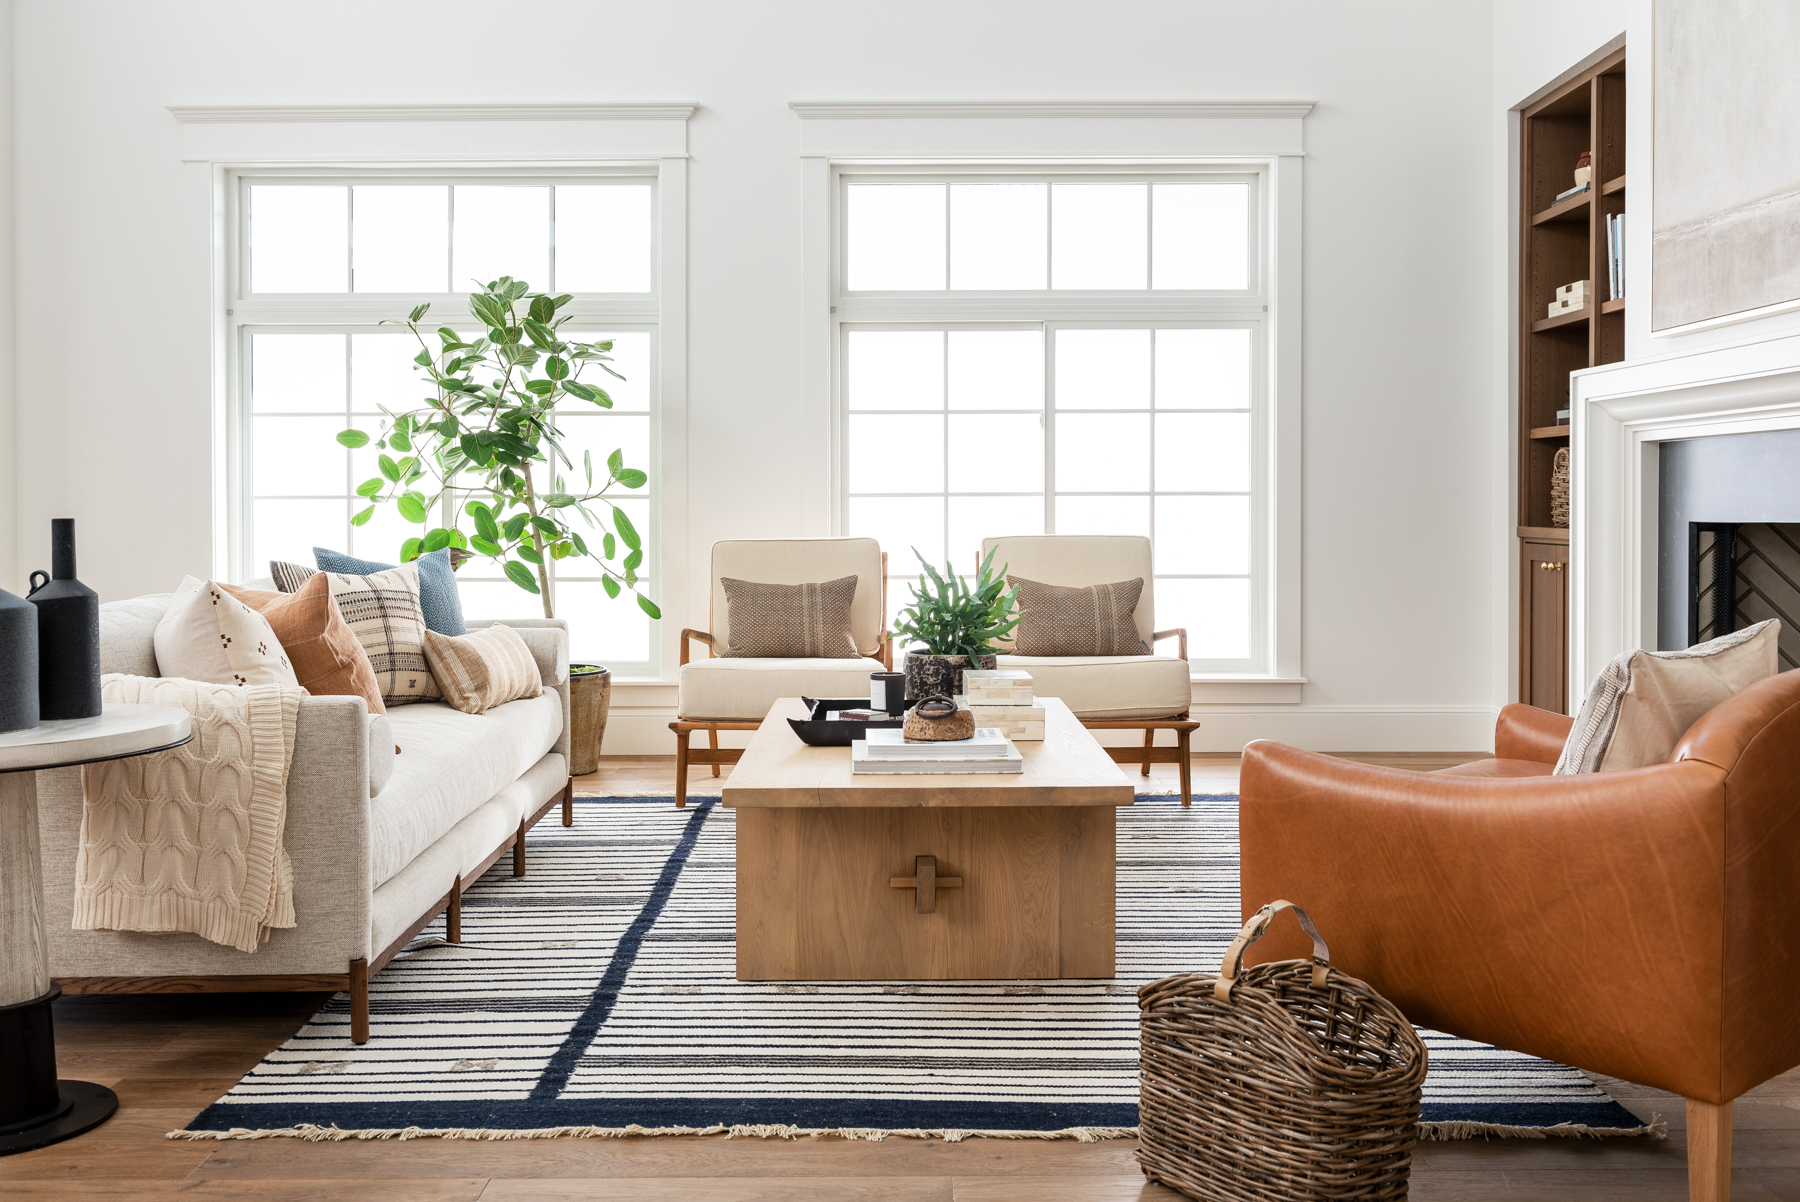 What We've Learned About Designing Living Spaces   Studio McGee